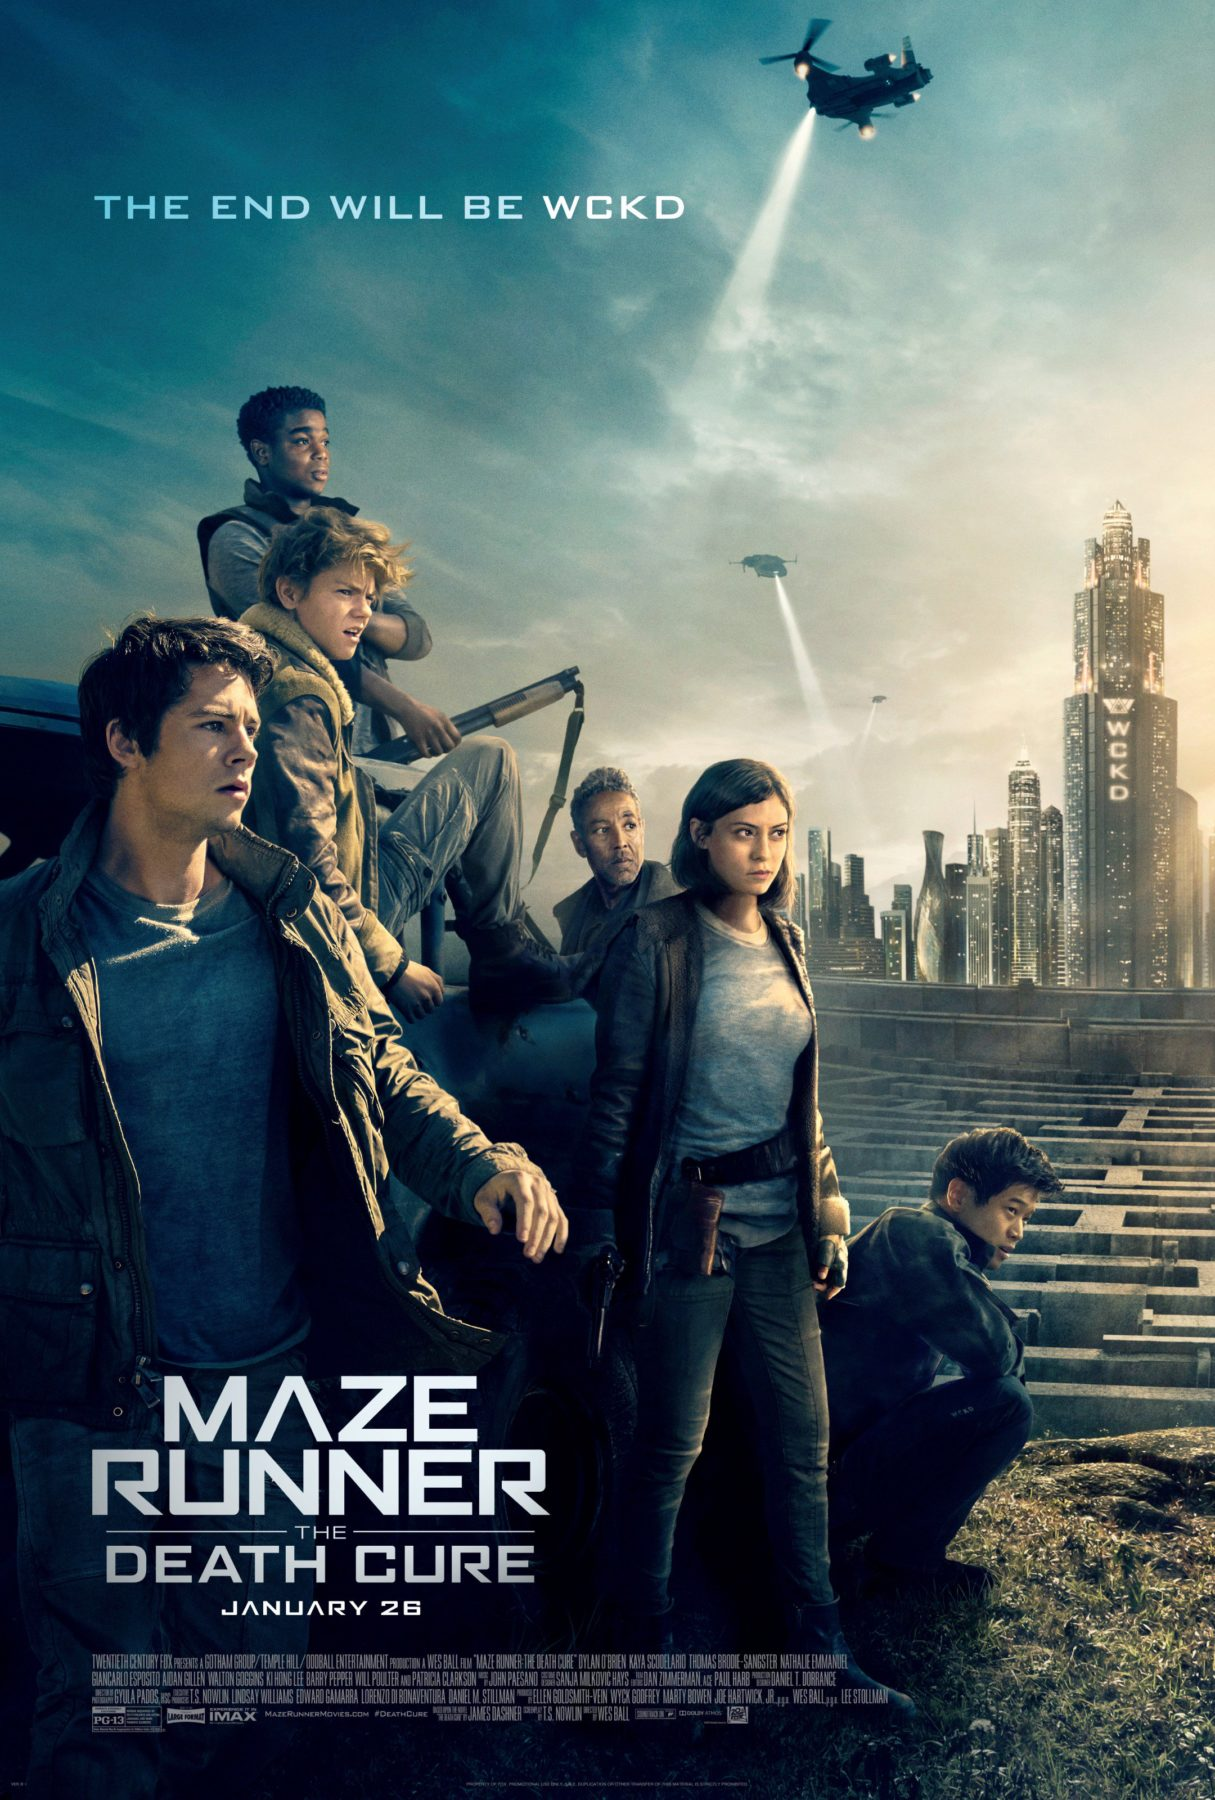 Maze Runner The Death Cure gets two new posters